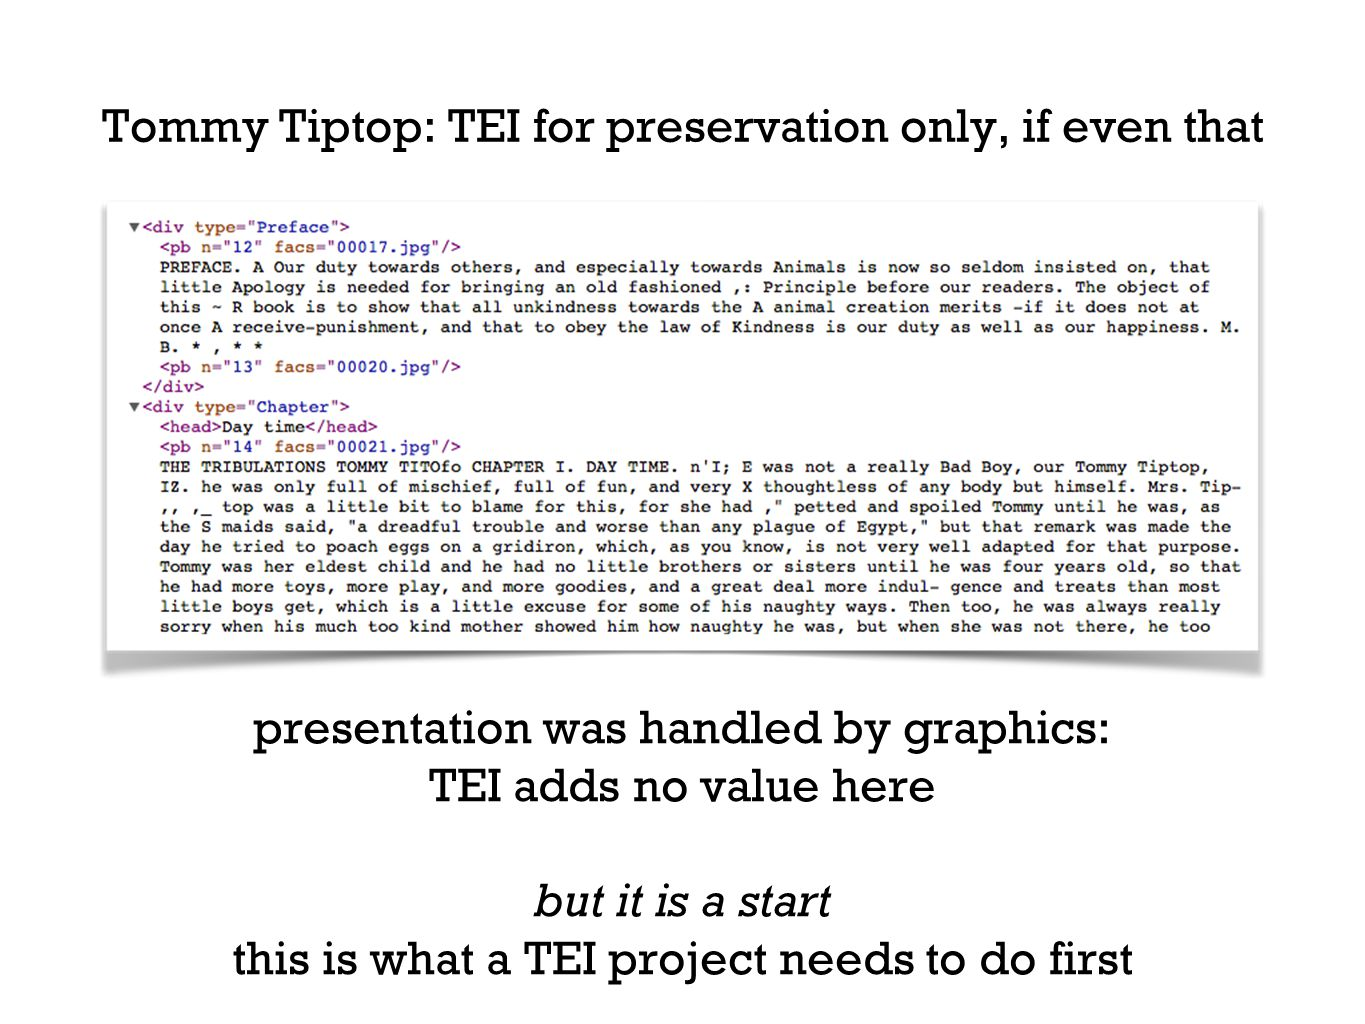 Tommy Tiptop: TEI for preservation only, if even that presentation was handled by graphics: TEI adds no value here but it is a start this is what a TEI project needs to do first